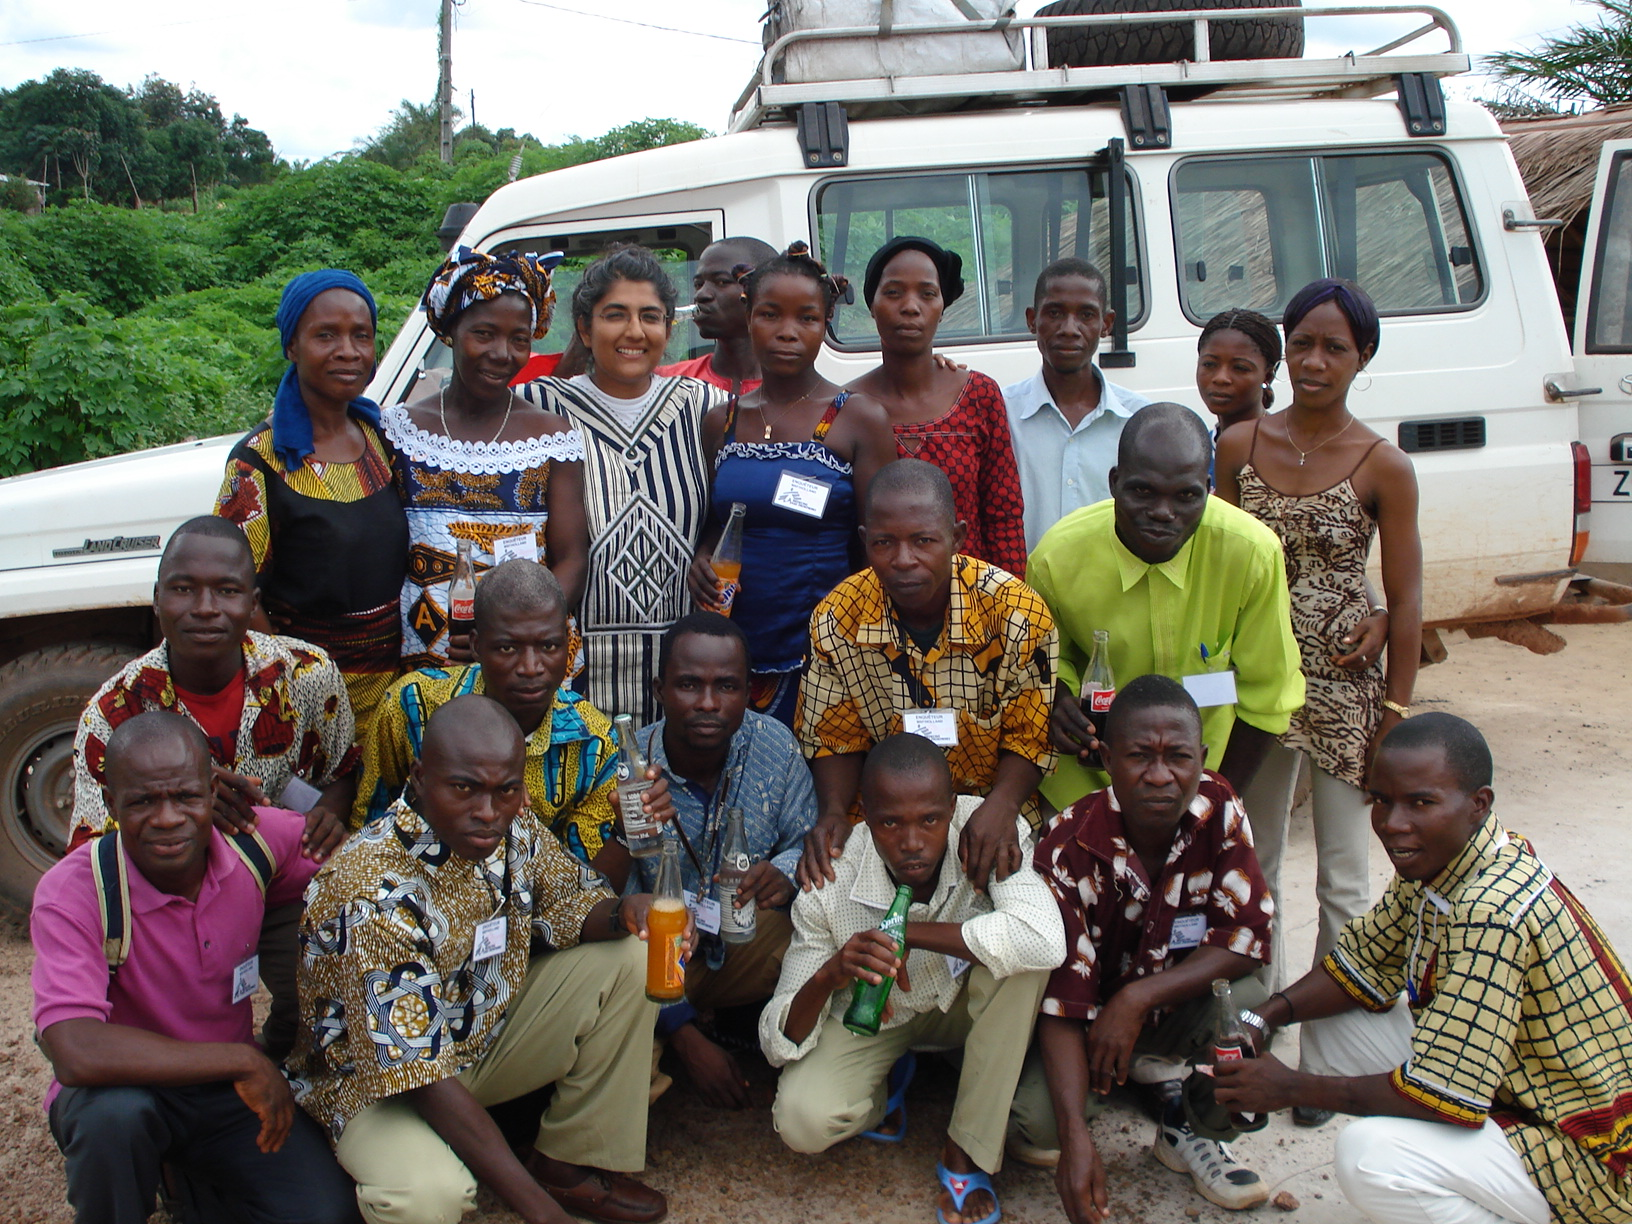 Kamalini Lokuge with a survey team in Cote d'Ivoire